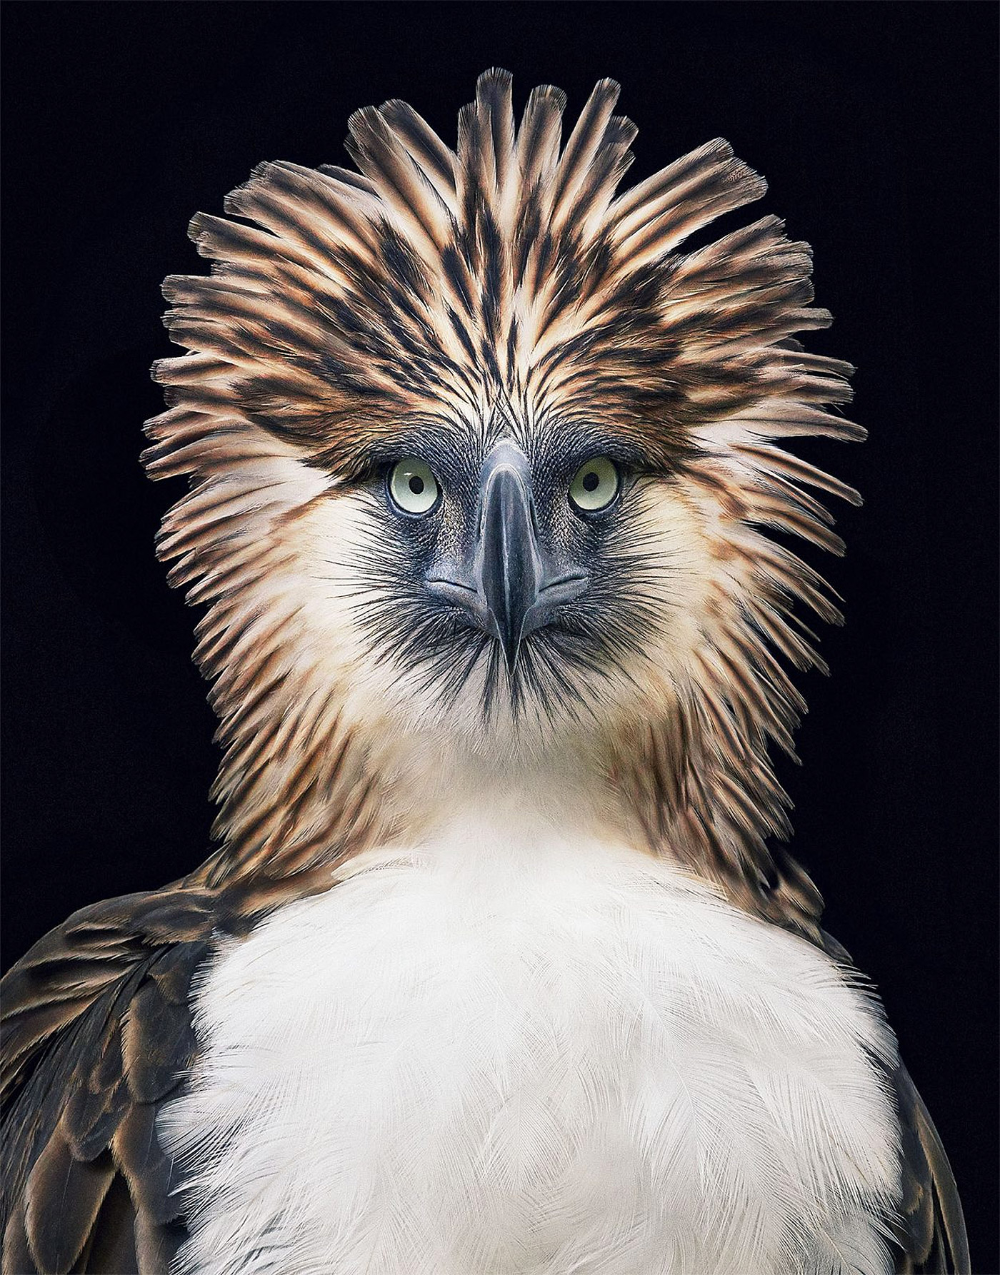 Endangered Beautiful Animal Portraits by Tim Flach